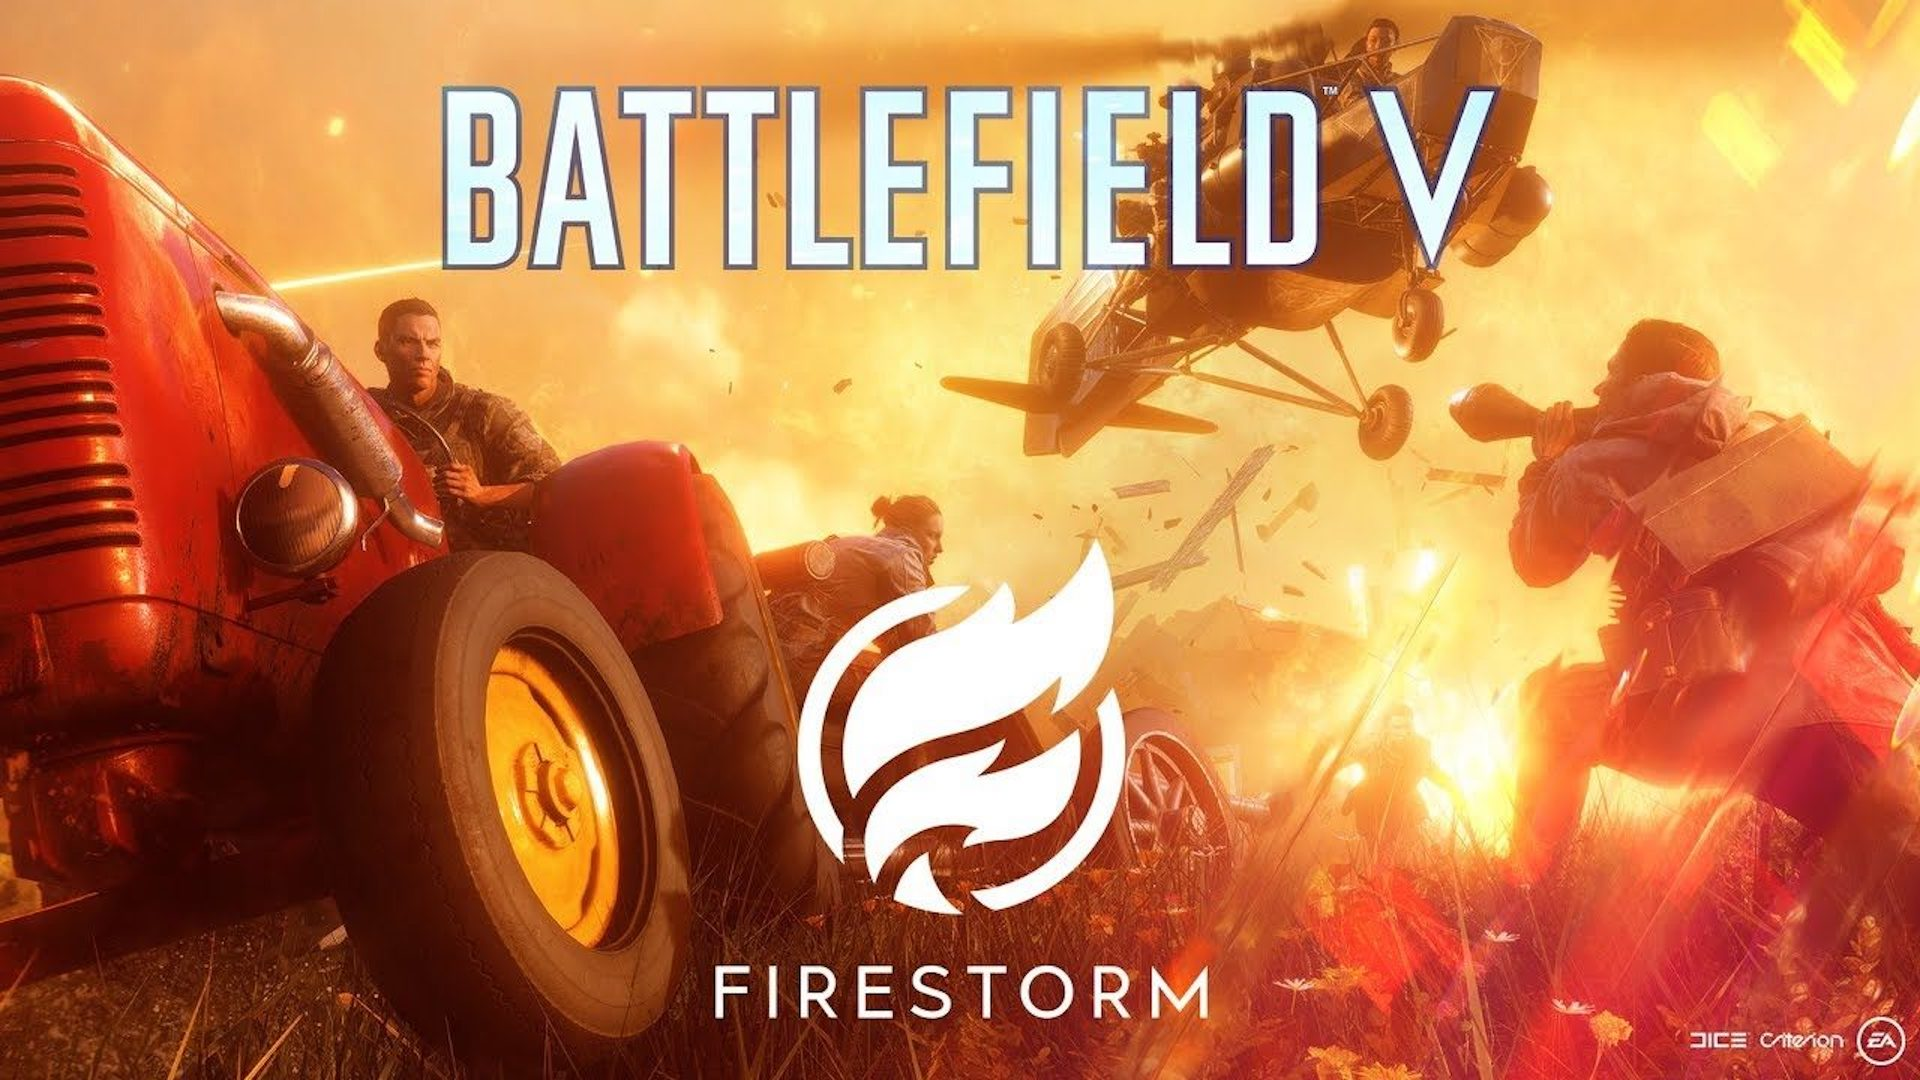 Everything you need to know about Firestorm, Battlefield V Battle Royale extension